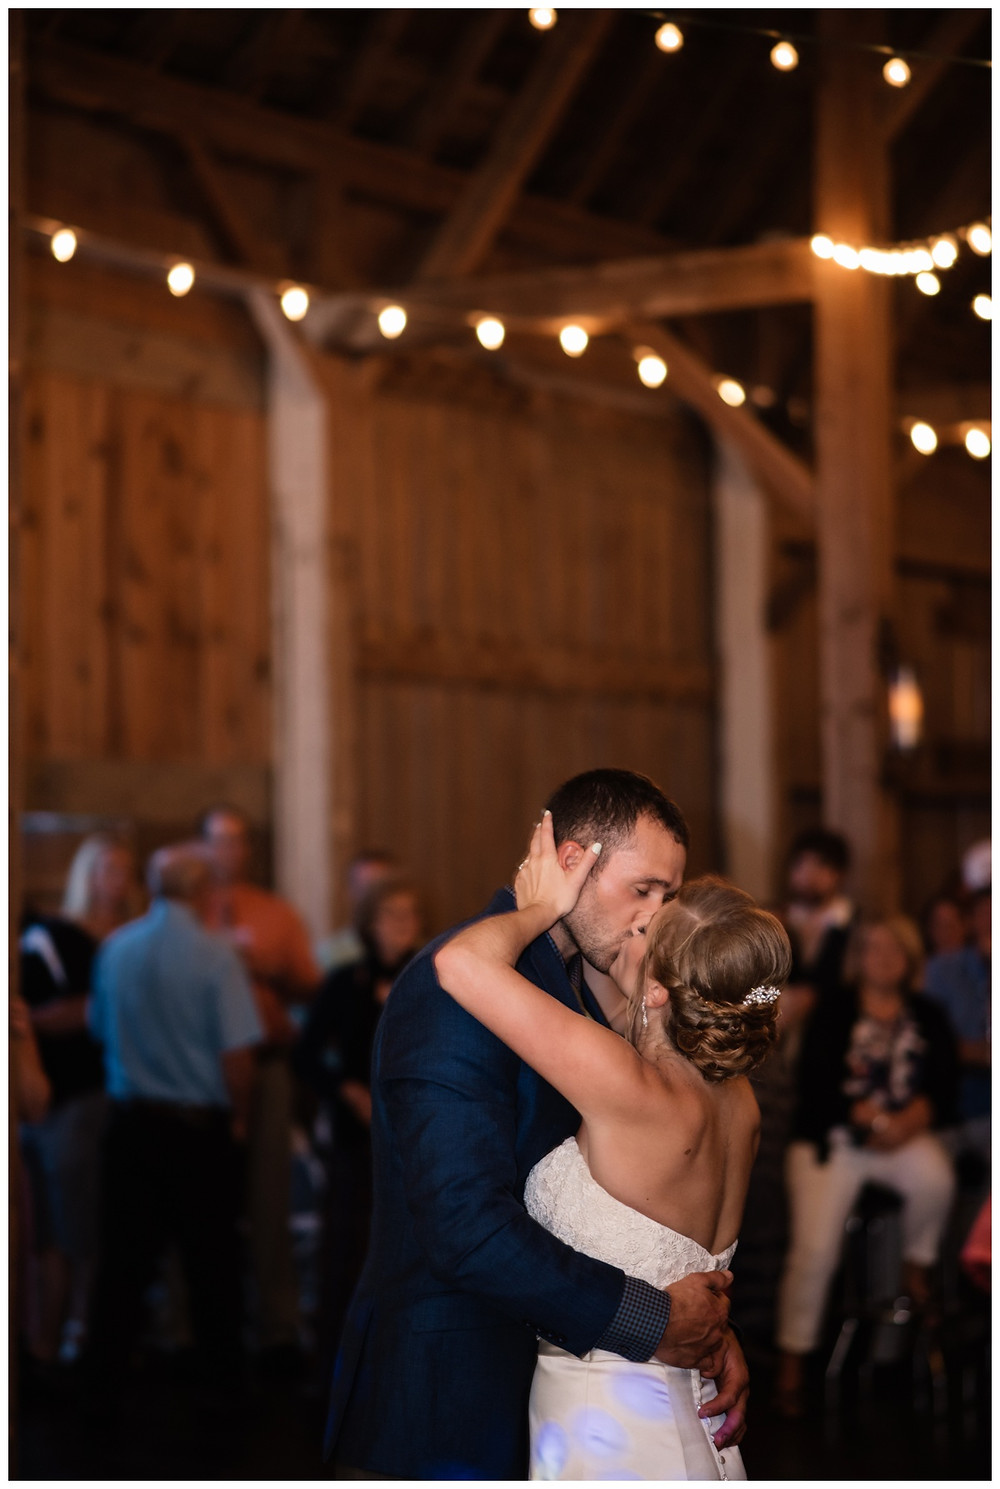 first-dance-at-brighton-acres-wedding-by-green-bay-wedding-photographer-kyra-rane-photography